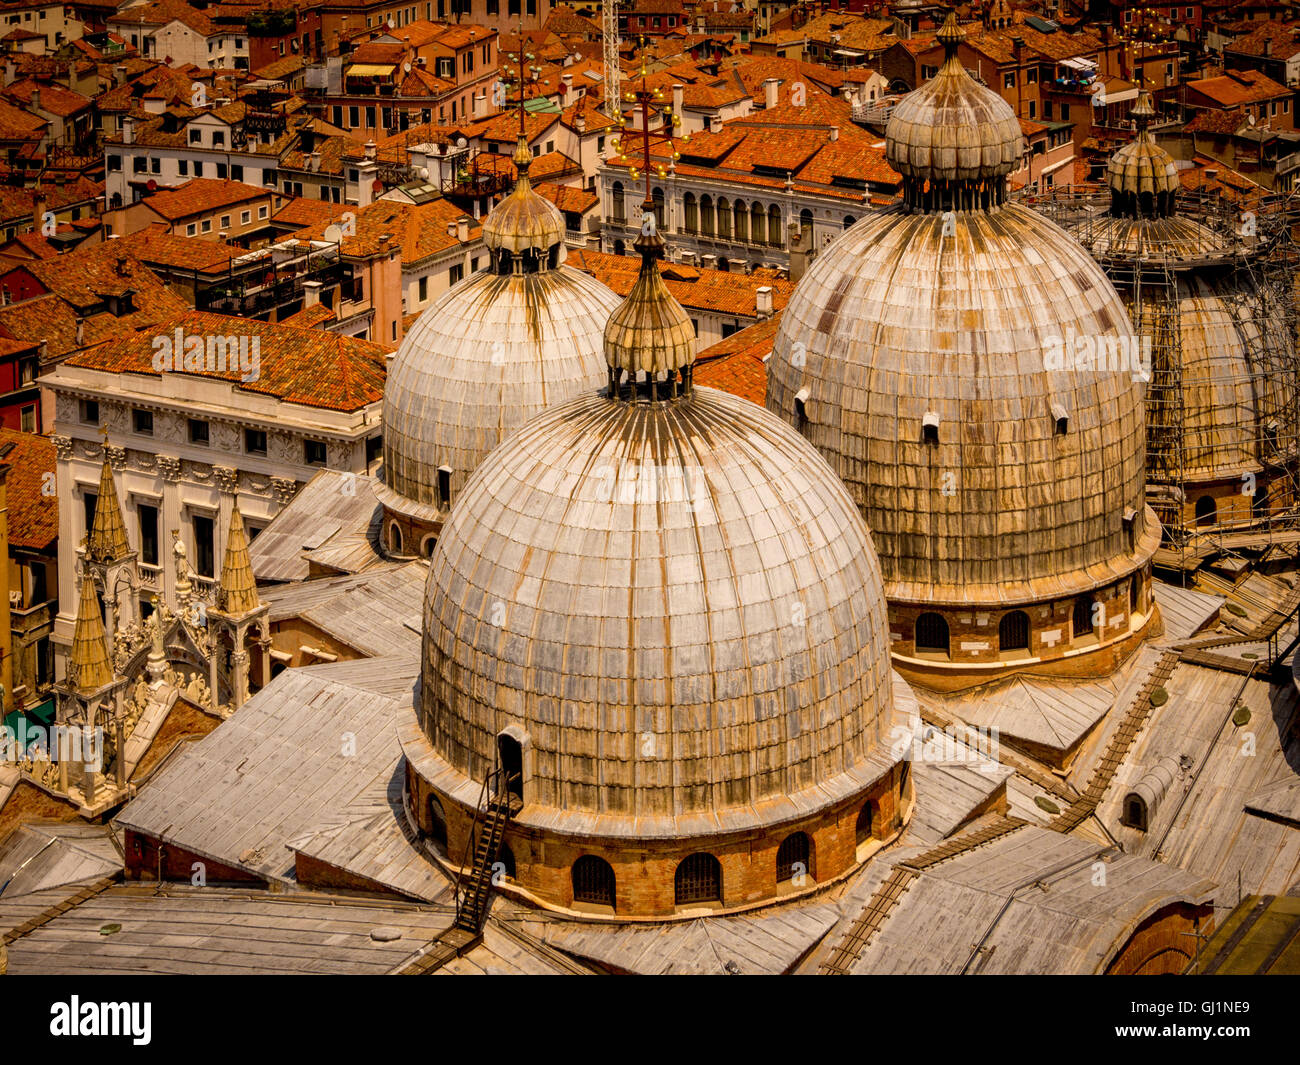 Aerial view of 4 of the 5 domes of St Mark's Basilica's, Venice, Italy. Stock Photo